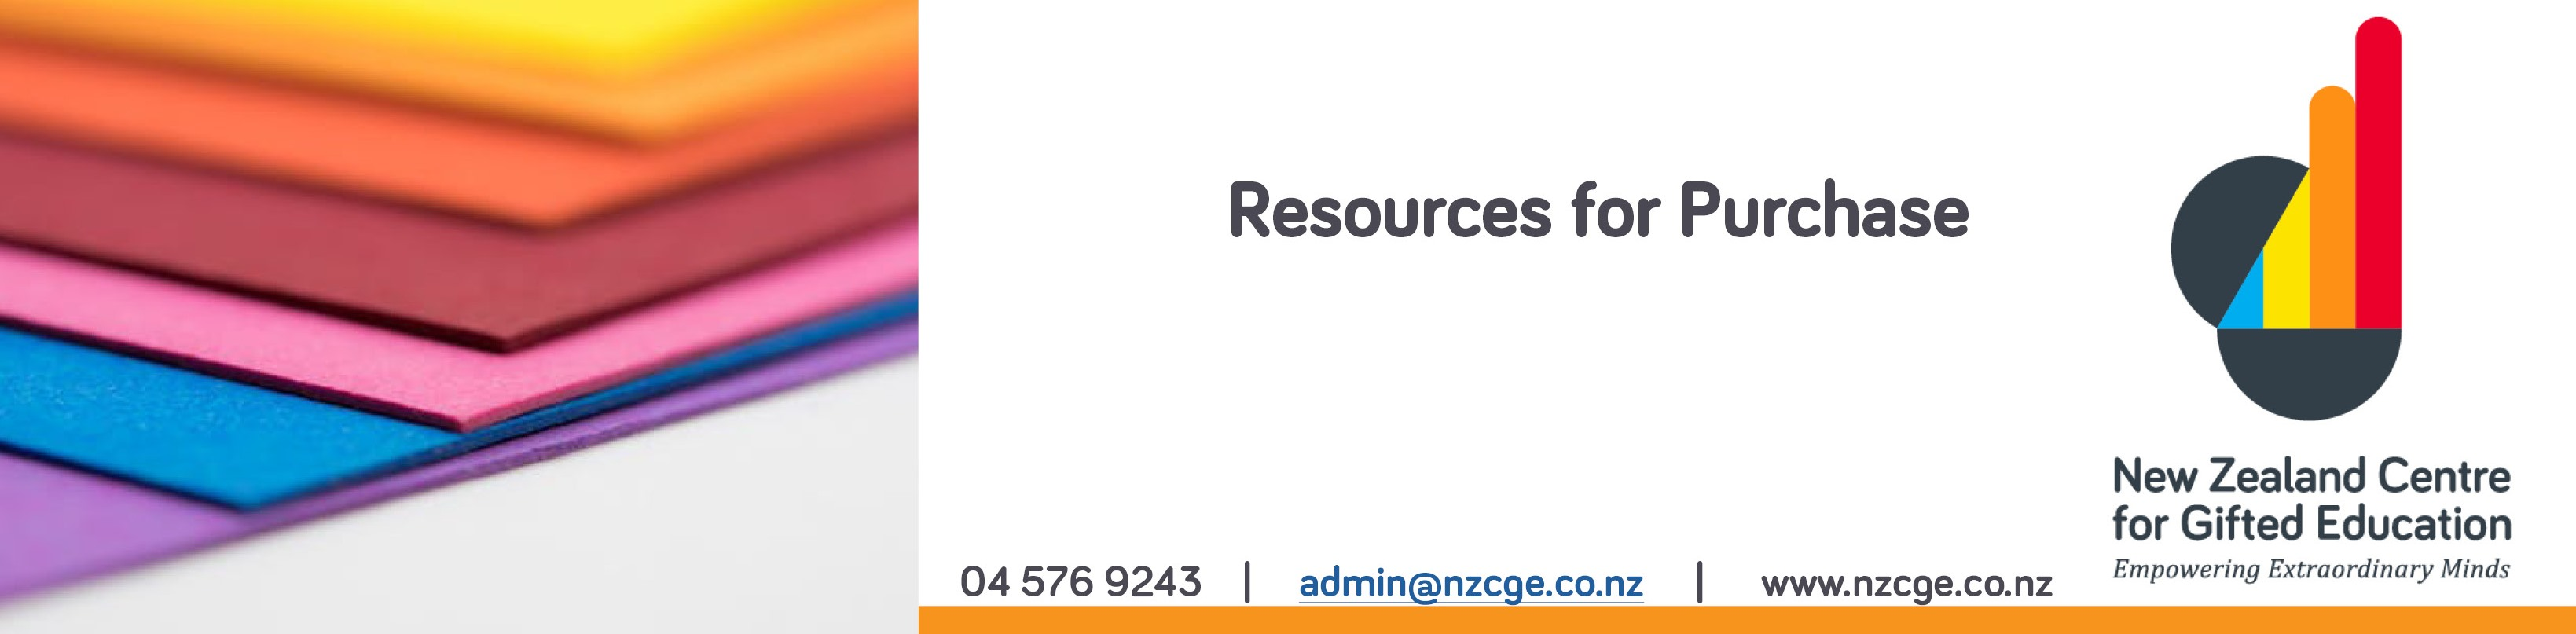 resources for purchase new zealand centre for gifted education